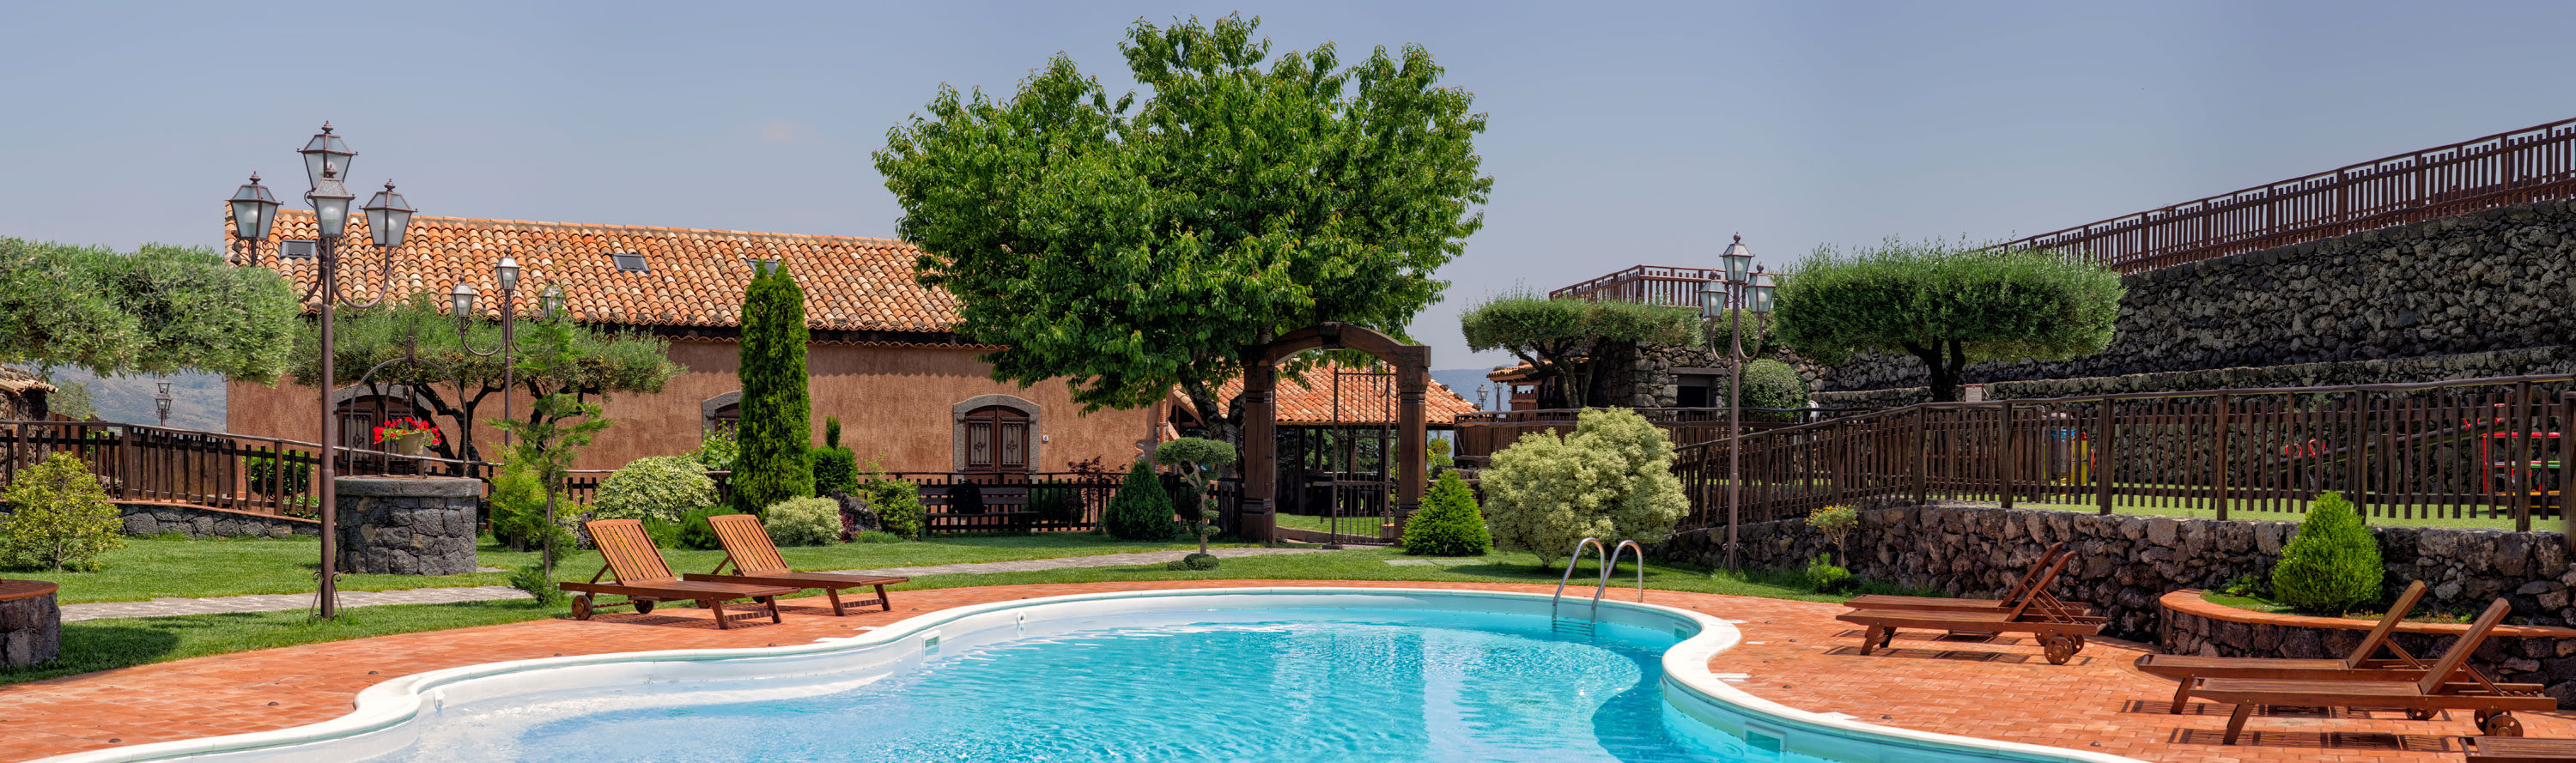 Etna Hotels with Pool